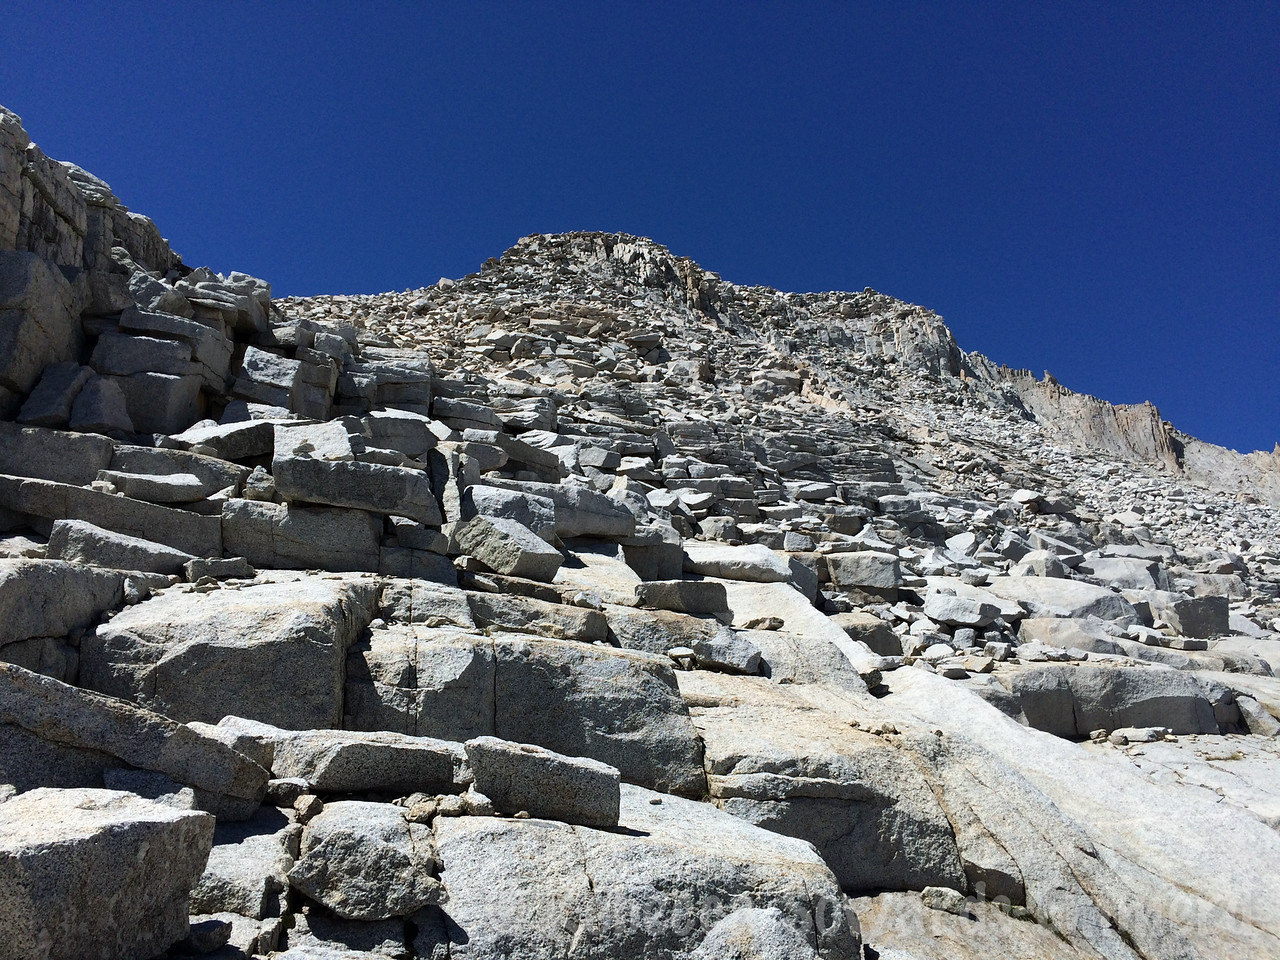 We're finally on the rib and off the slabs - time for some boulder scrambling.